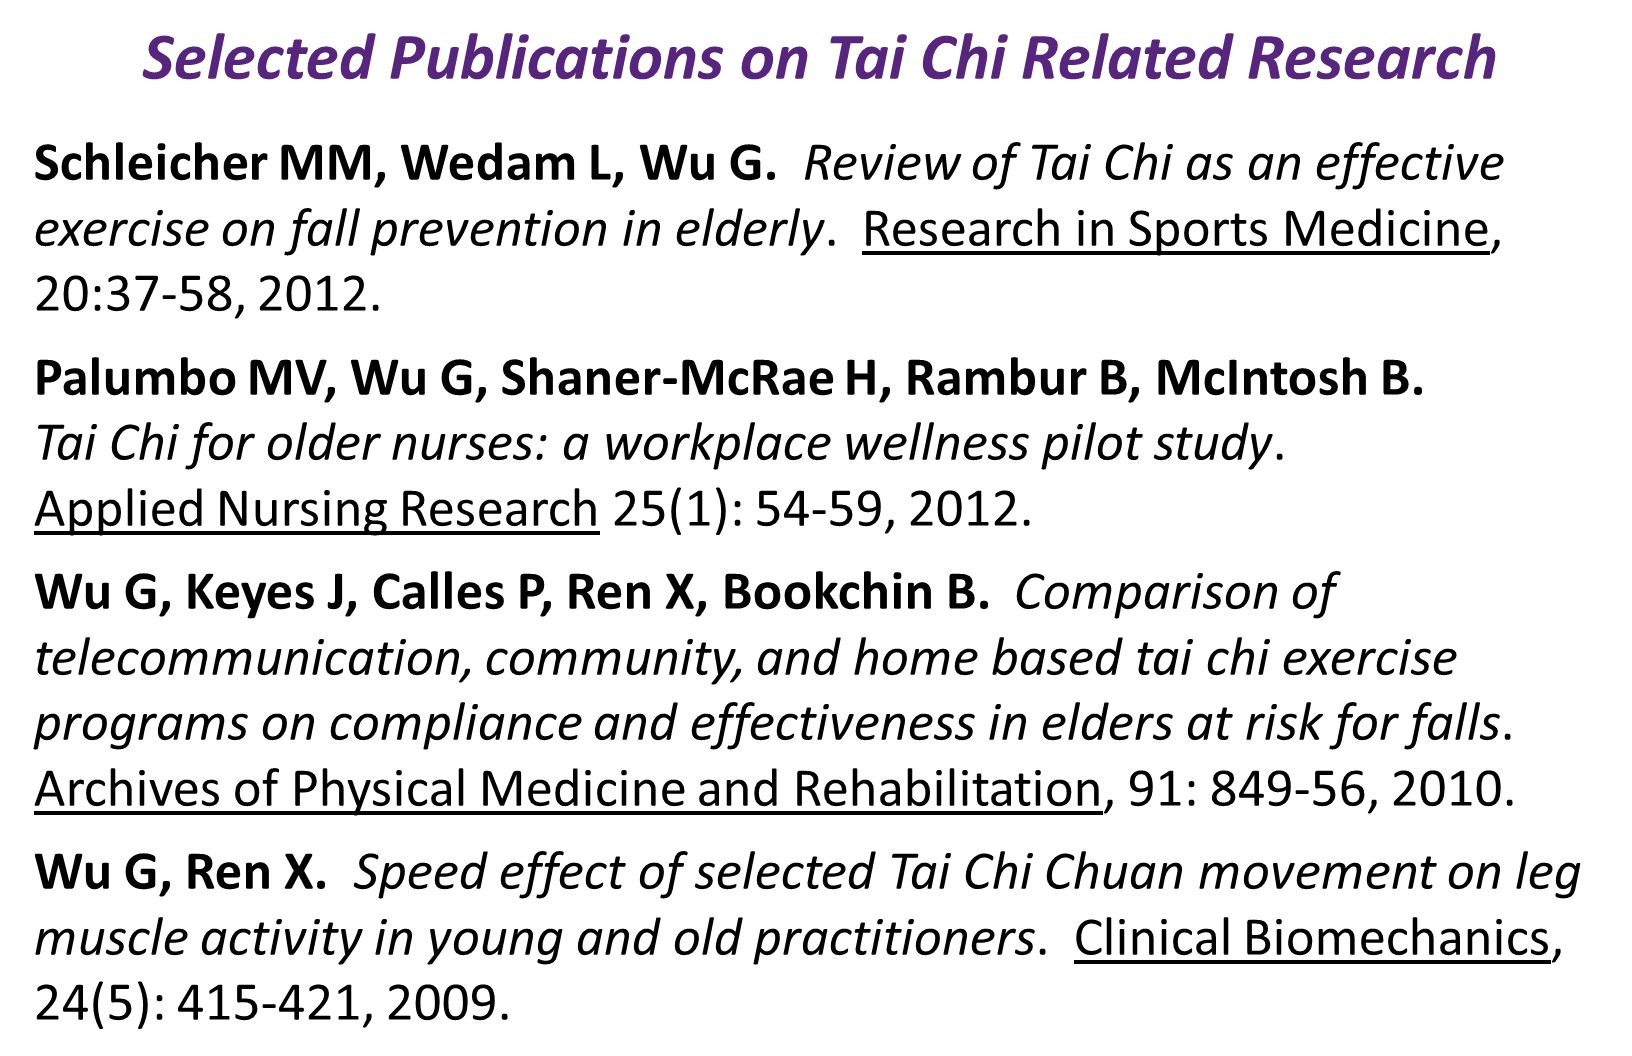 Selected Publications on Tai Chi Related Research Schleicher MM, Wedam L, Wu G.